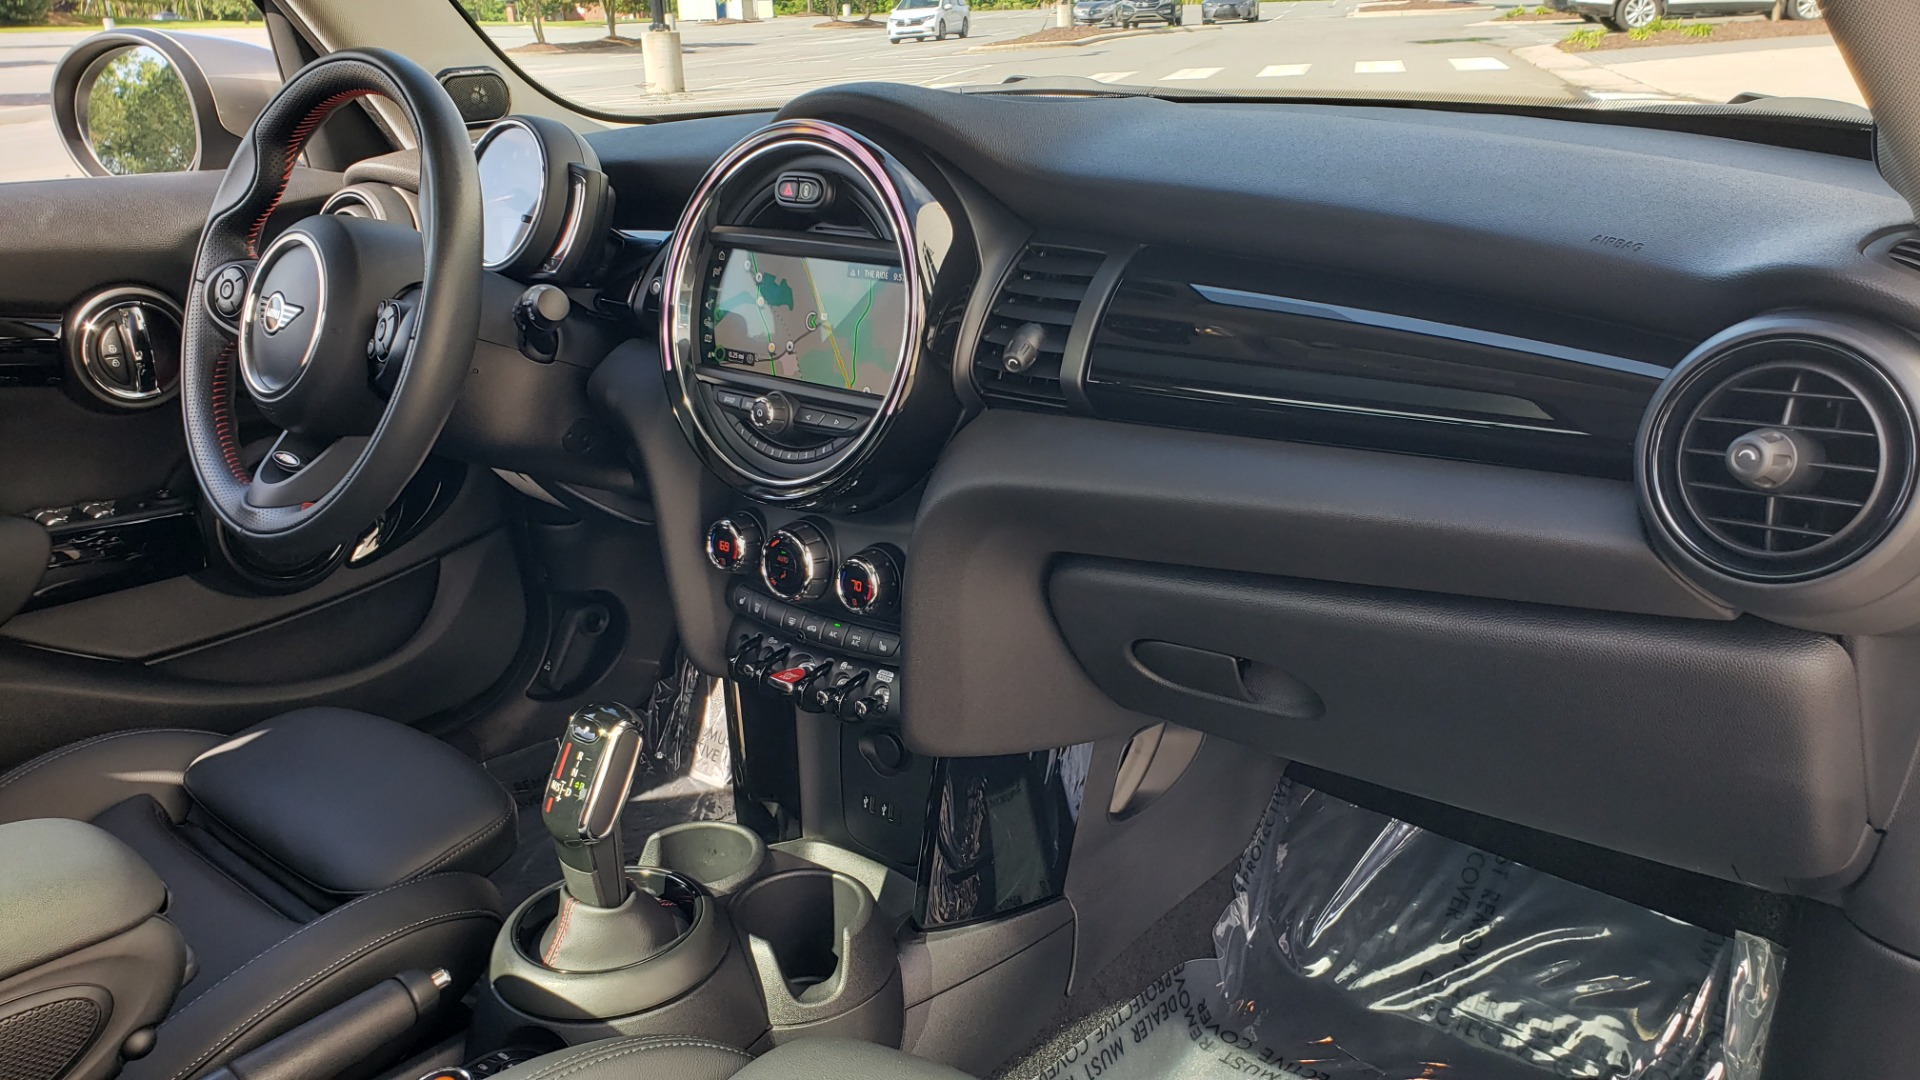 Used 2020 MINI HARDTOP 4 DOOR COOPER S / NAV / SUNROOF / AUTO / H/K SND / REARVIEW for sale $28,495 at Formula Imports in Charlotte NC 28227 71